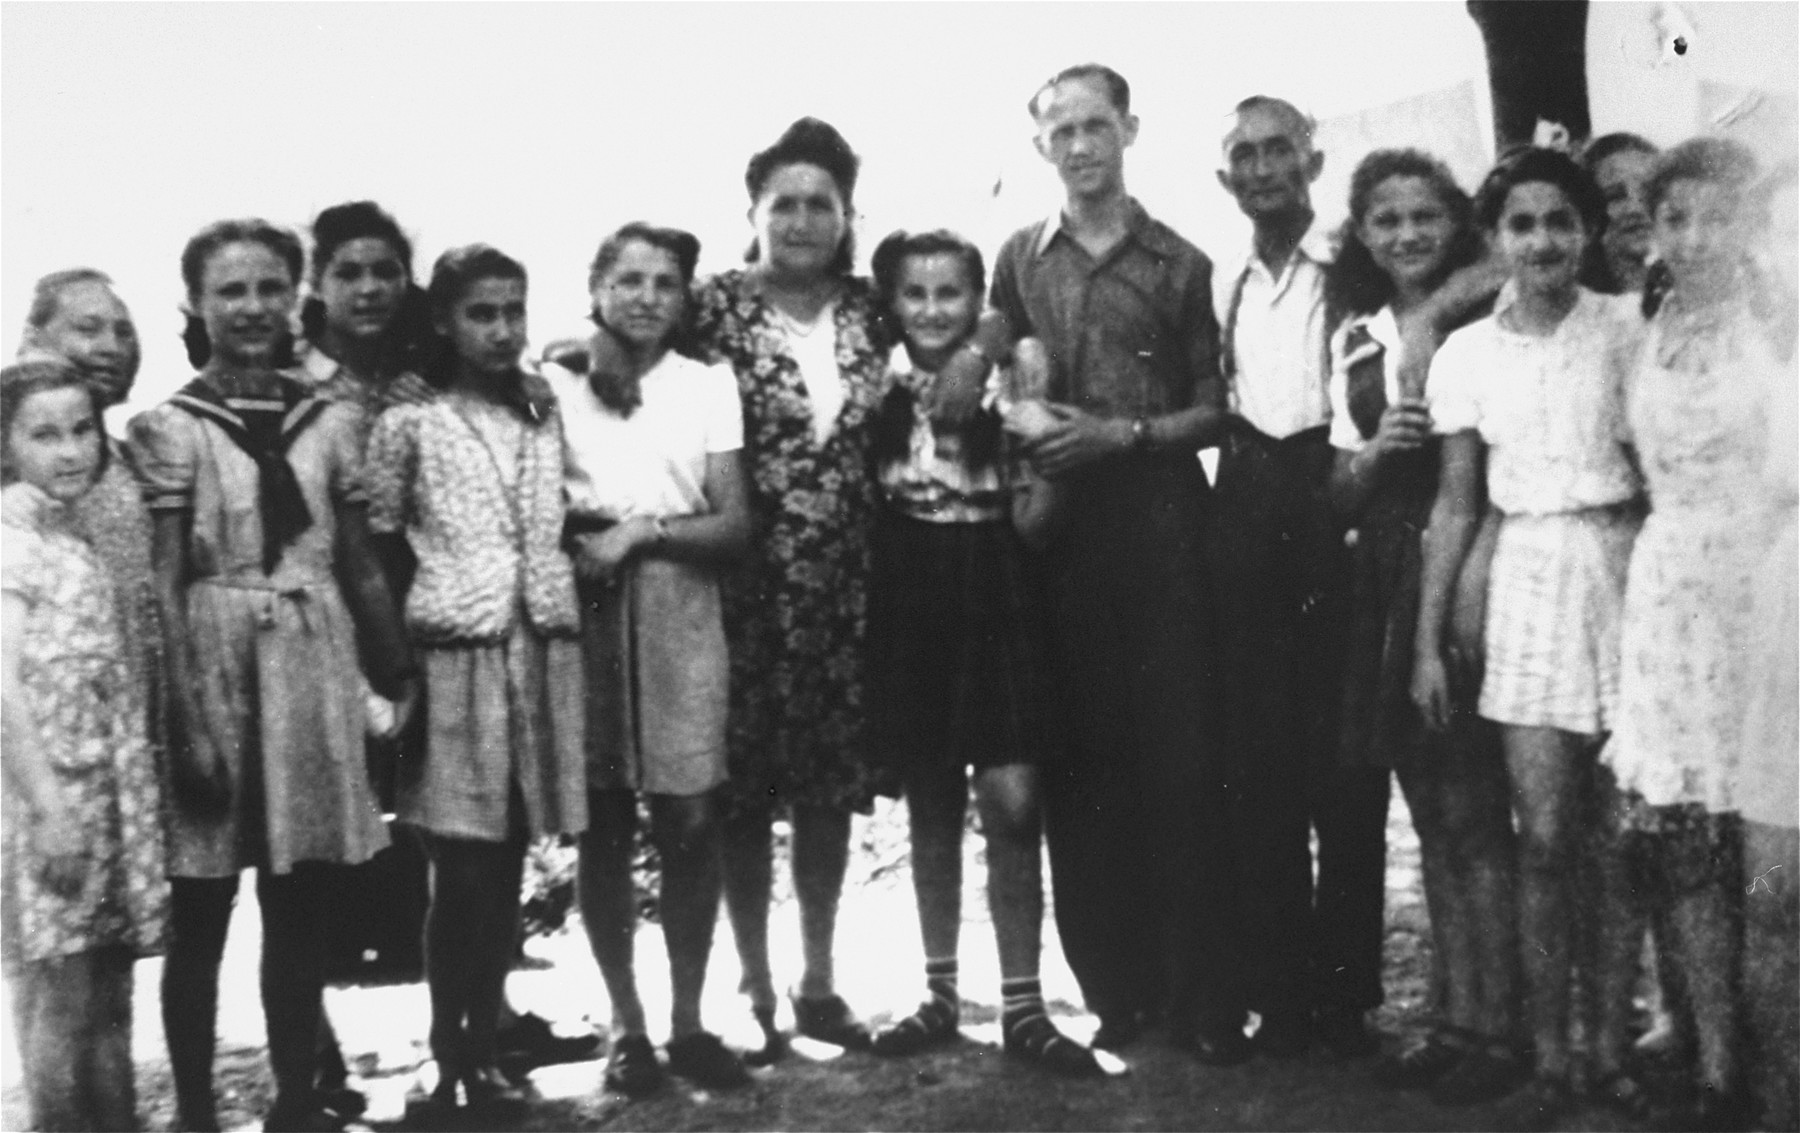 Group portrait of children in the Schirmeck orphanage in France.  Most of the children later immigrated to Israel.  Eve Nisencwajg (eighth from the left) moved to Canada to live with her aunt.